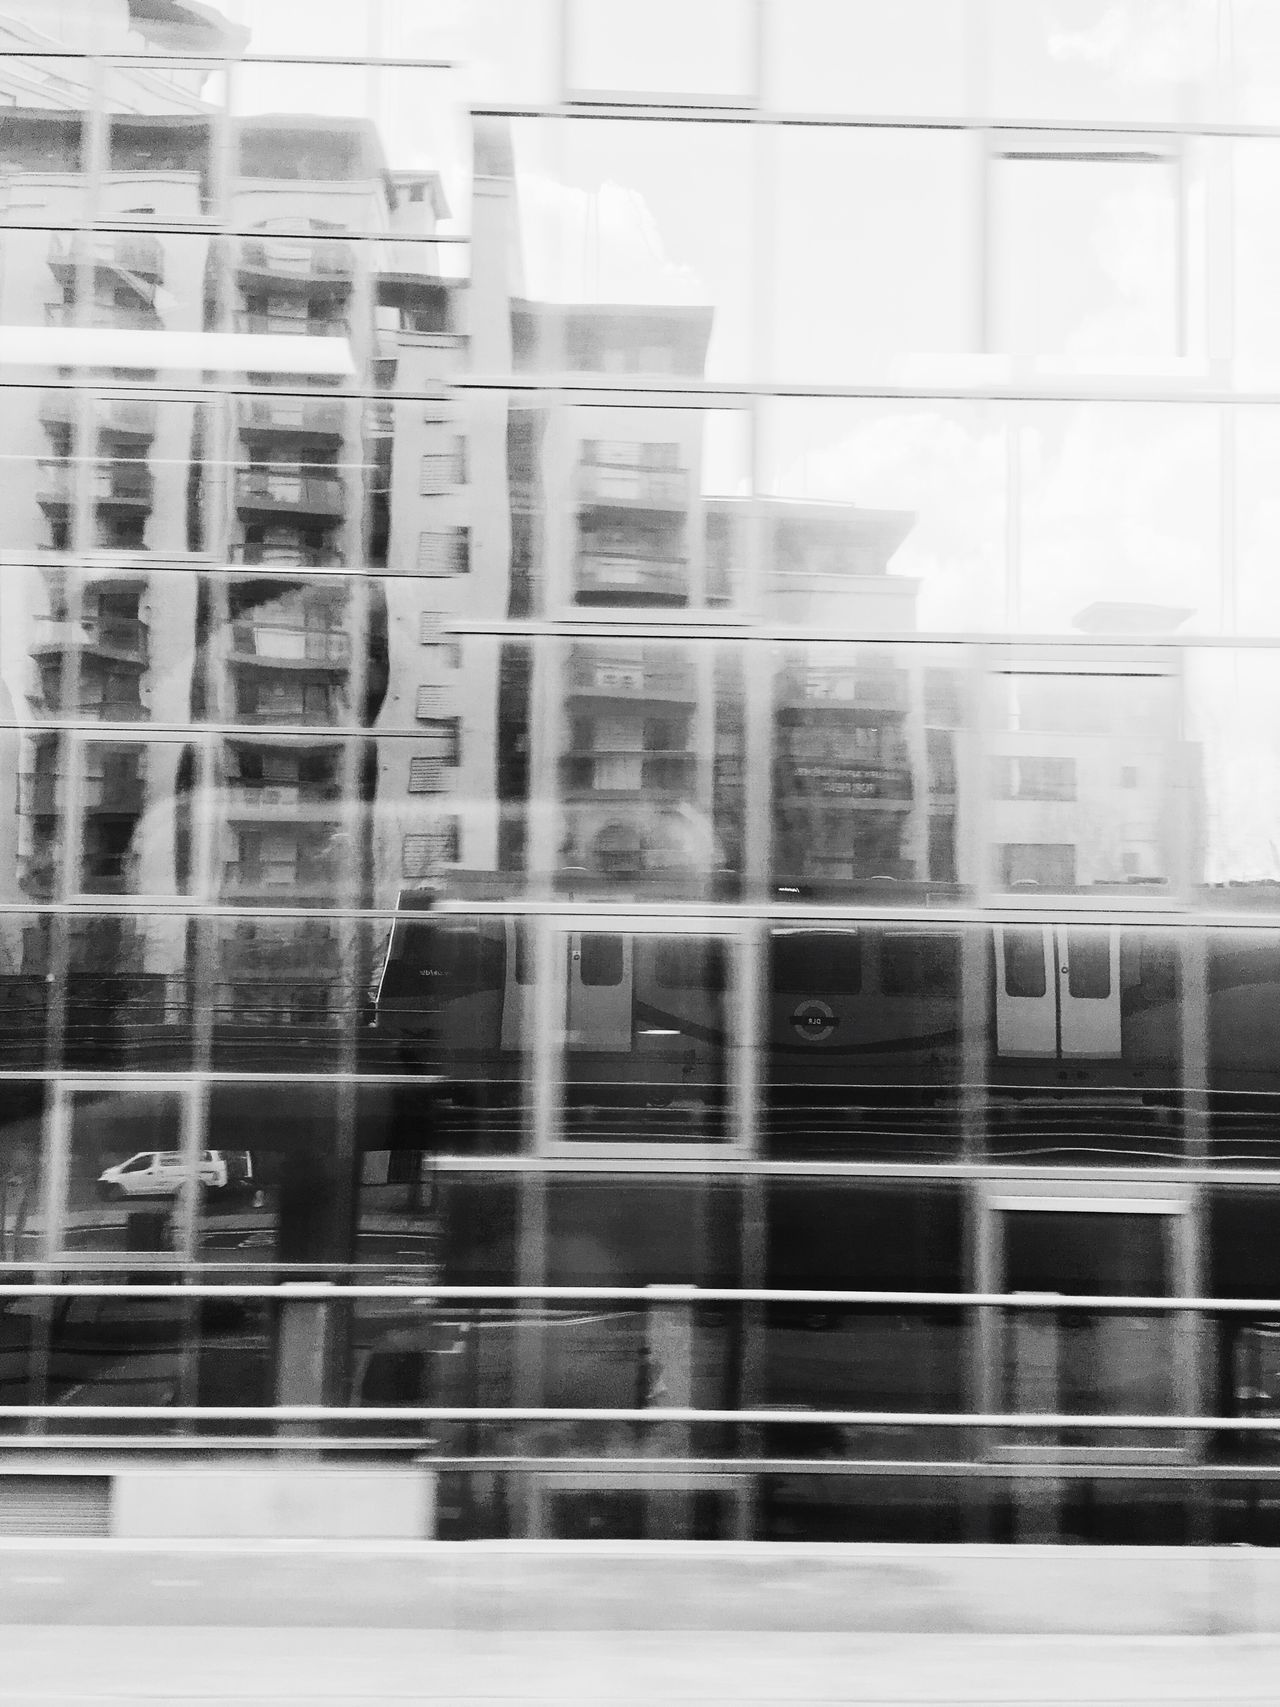 On a journey DLR Subway Architecture Monochrome Blackandwhite Showcase April Streetphotography London Vscocam VSCO Iphonesia IPhoneography